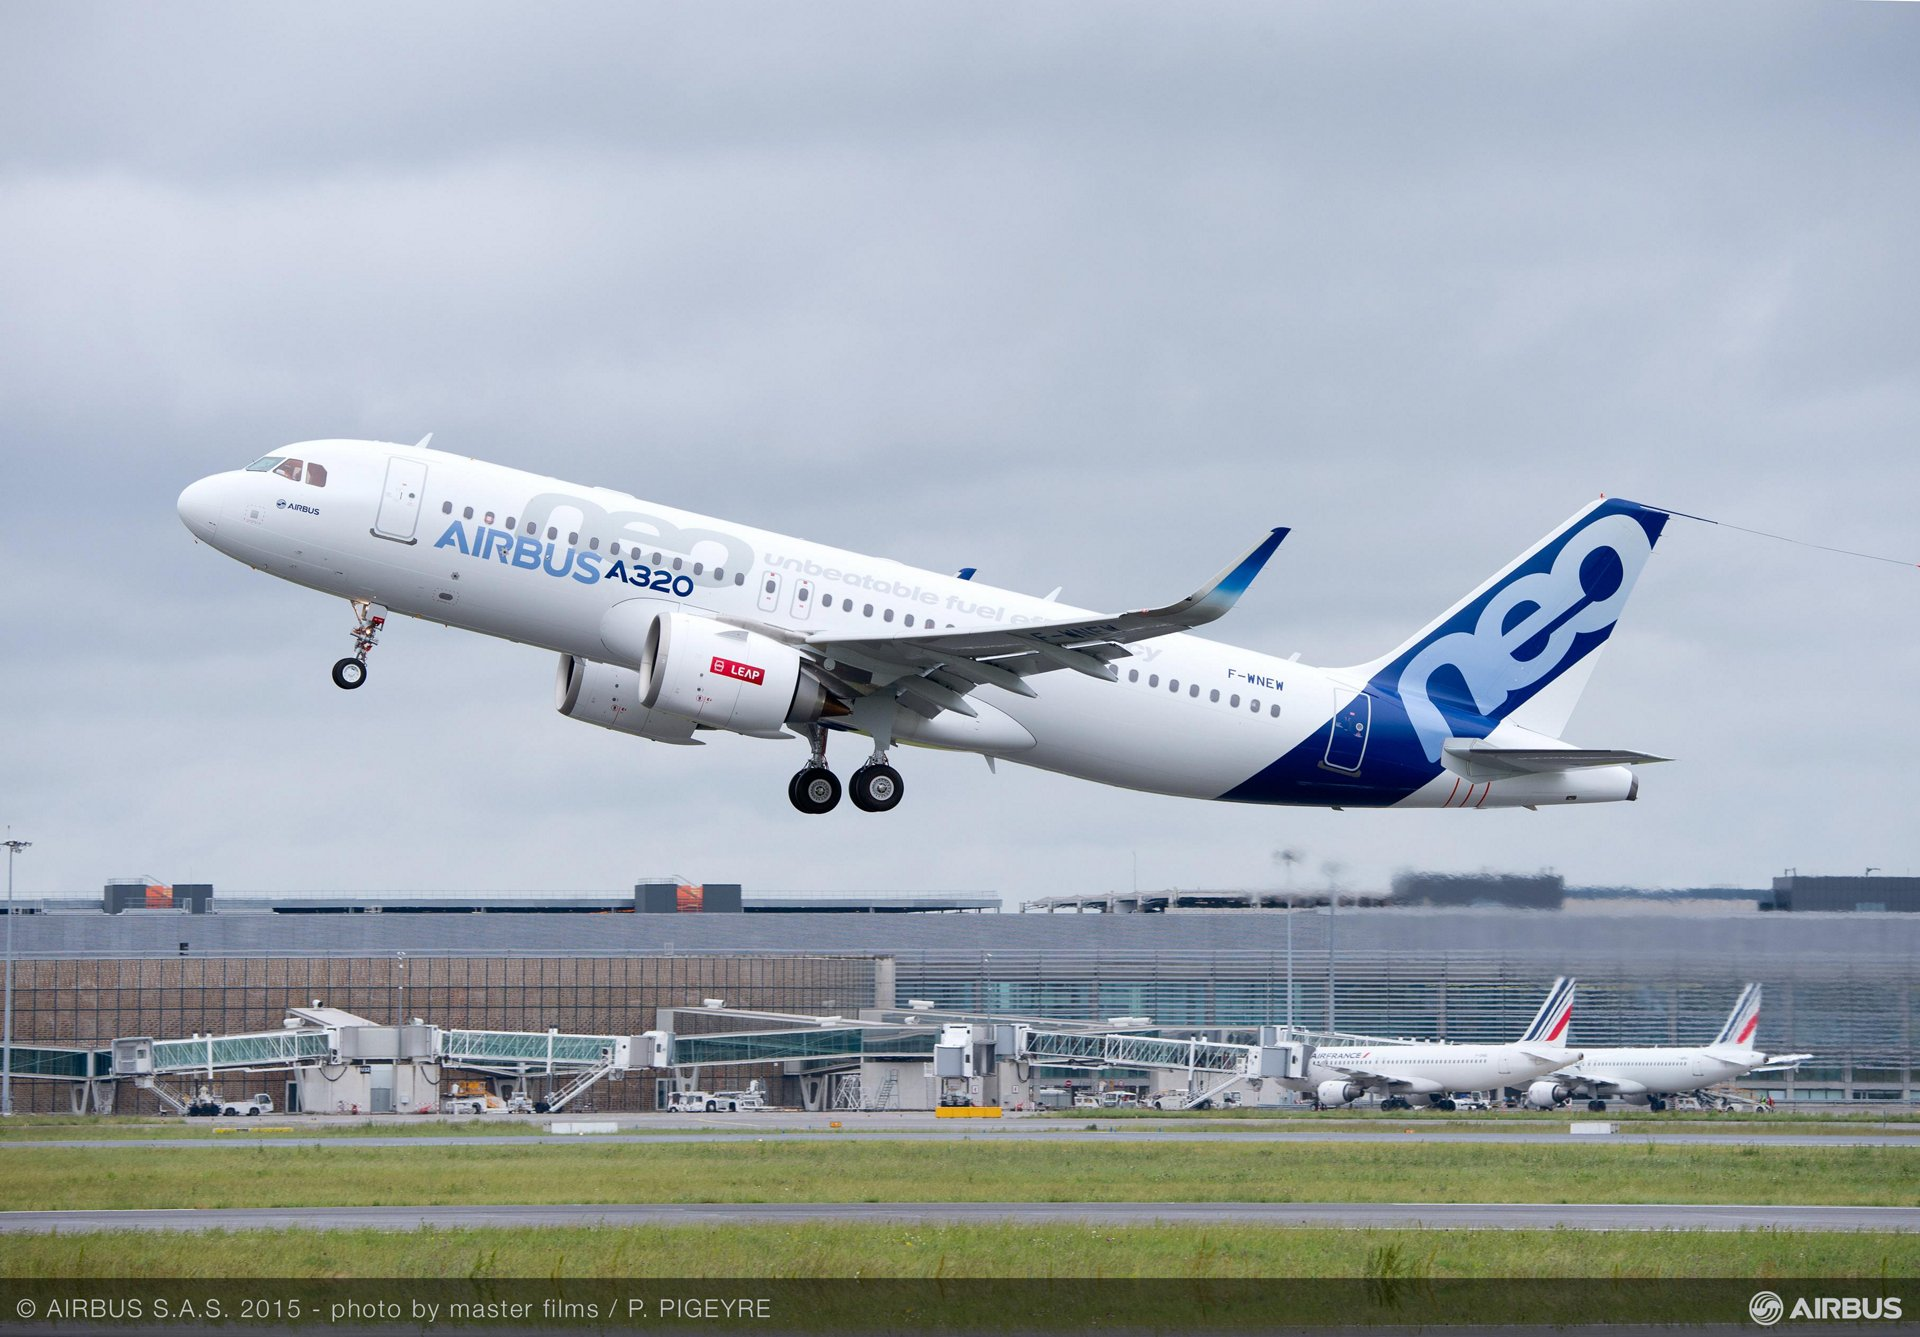 Undisclosed Customer Orders 10 Airbus A320neo Aircraft World Airline News